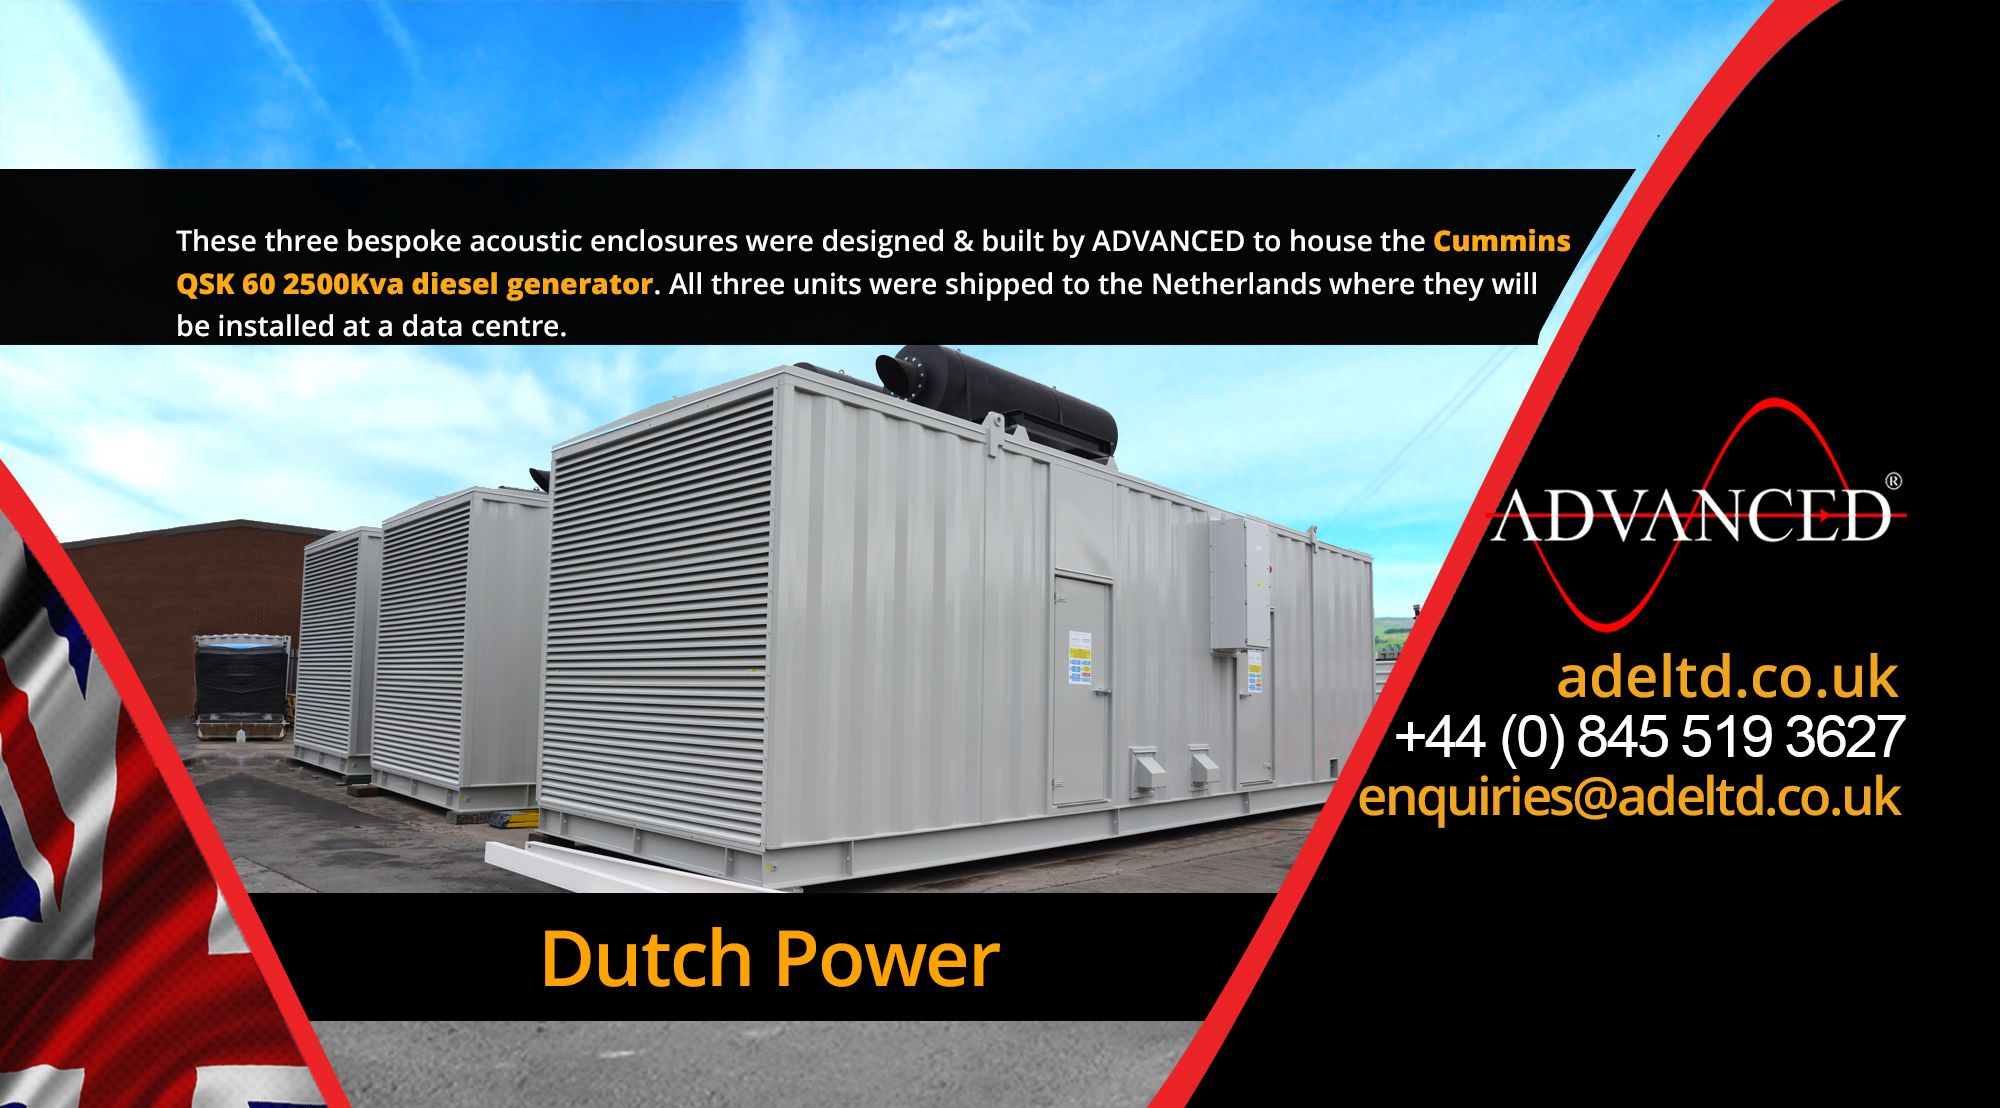 Visit adeltd for more information on Diesel Generators